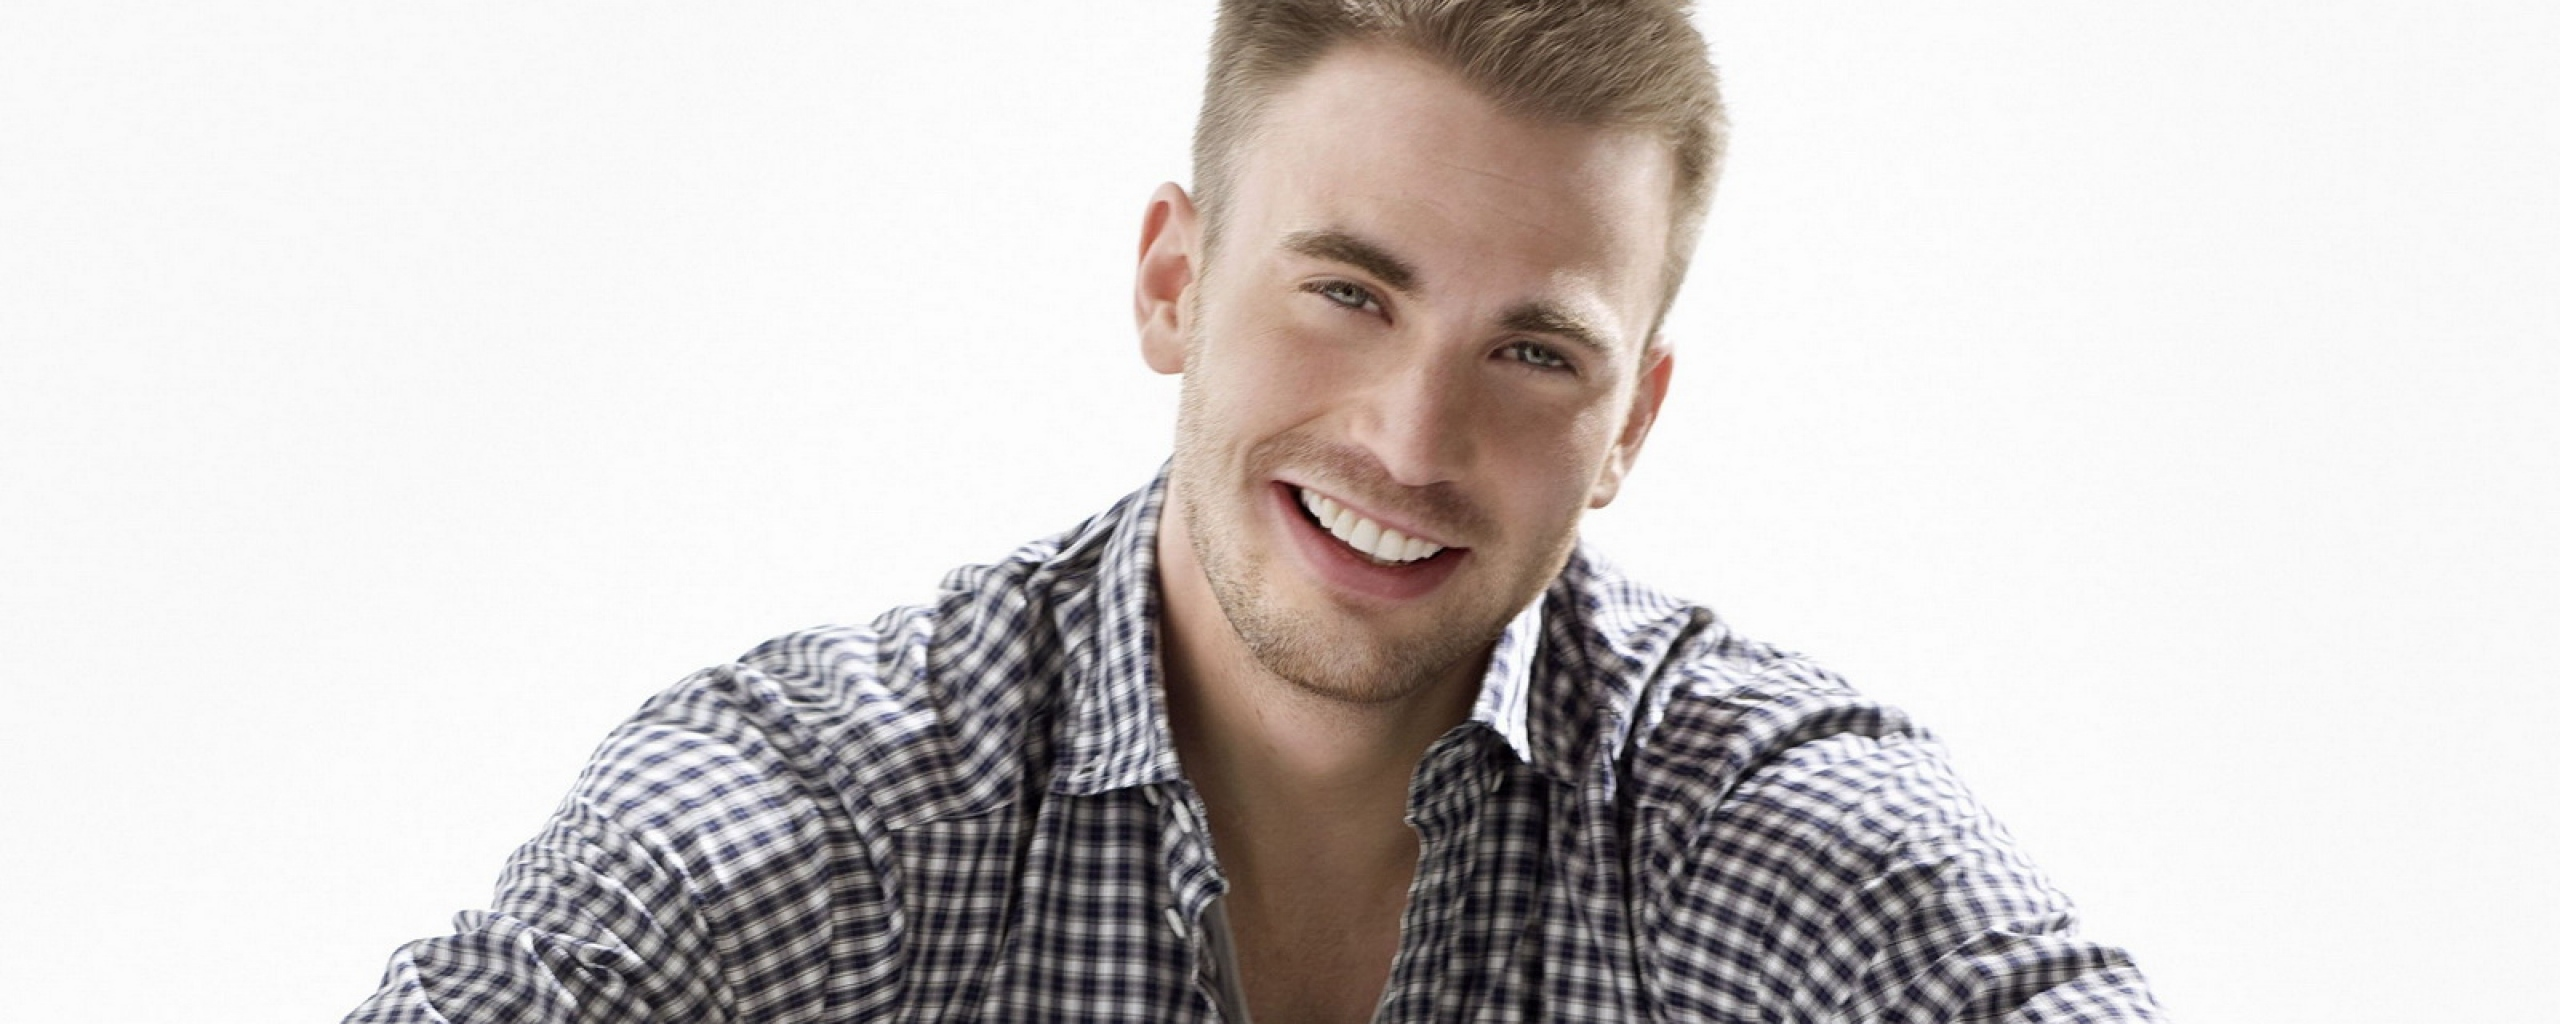 Chris Evans Wallpapers High Resolution And Quality Download